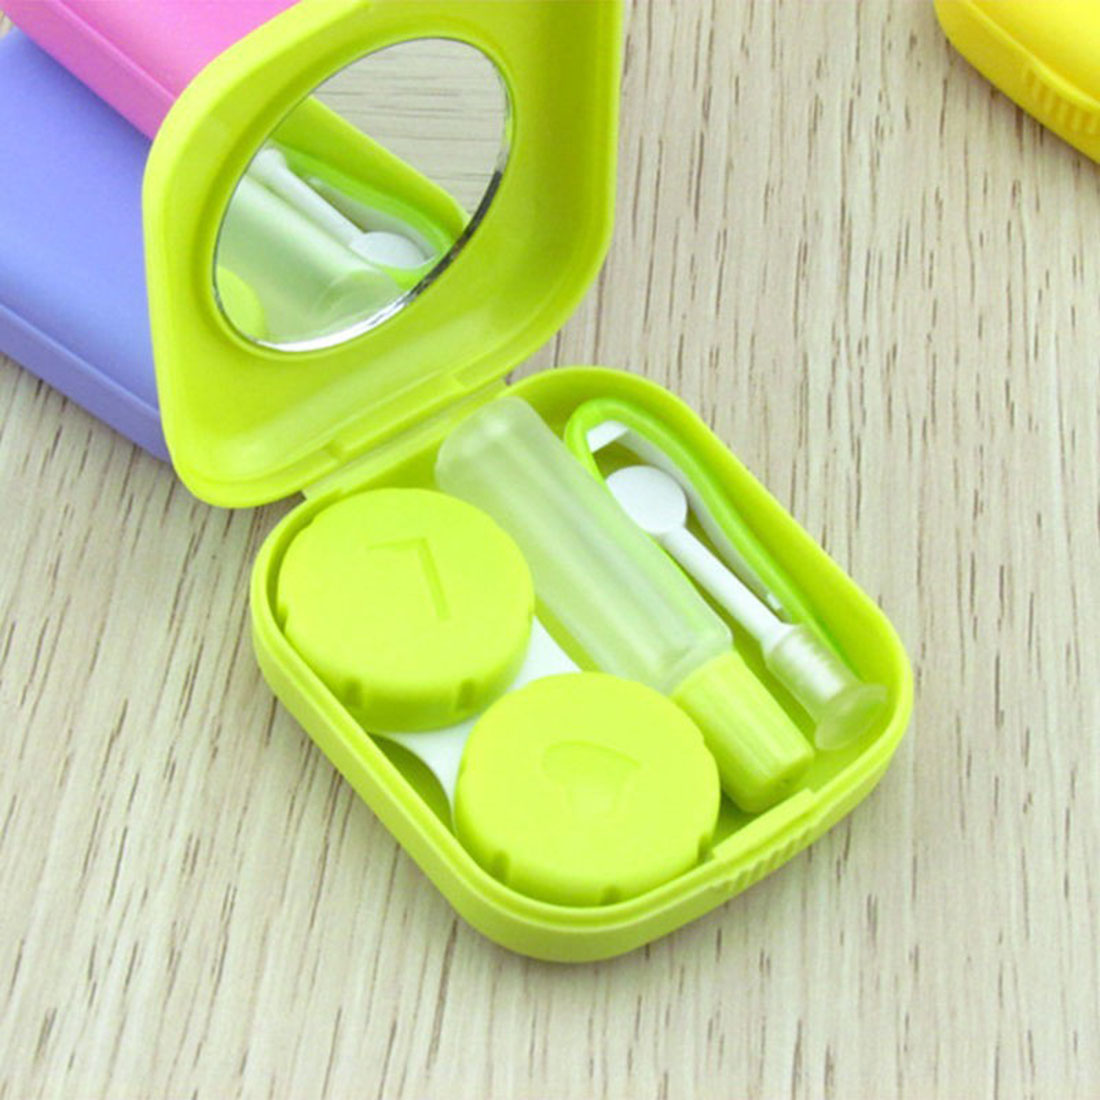 Cute Contact Lenses Box Lens Case For Eyes Care Kit Candy Color Glasses Case Holder Container Gift